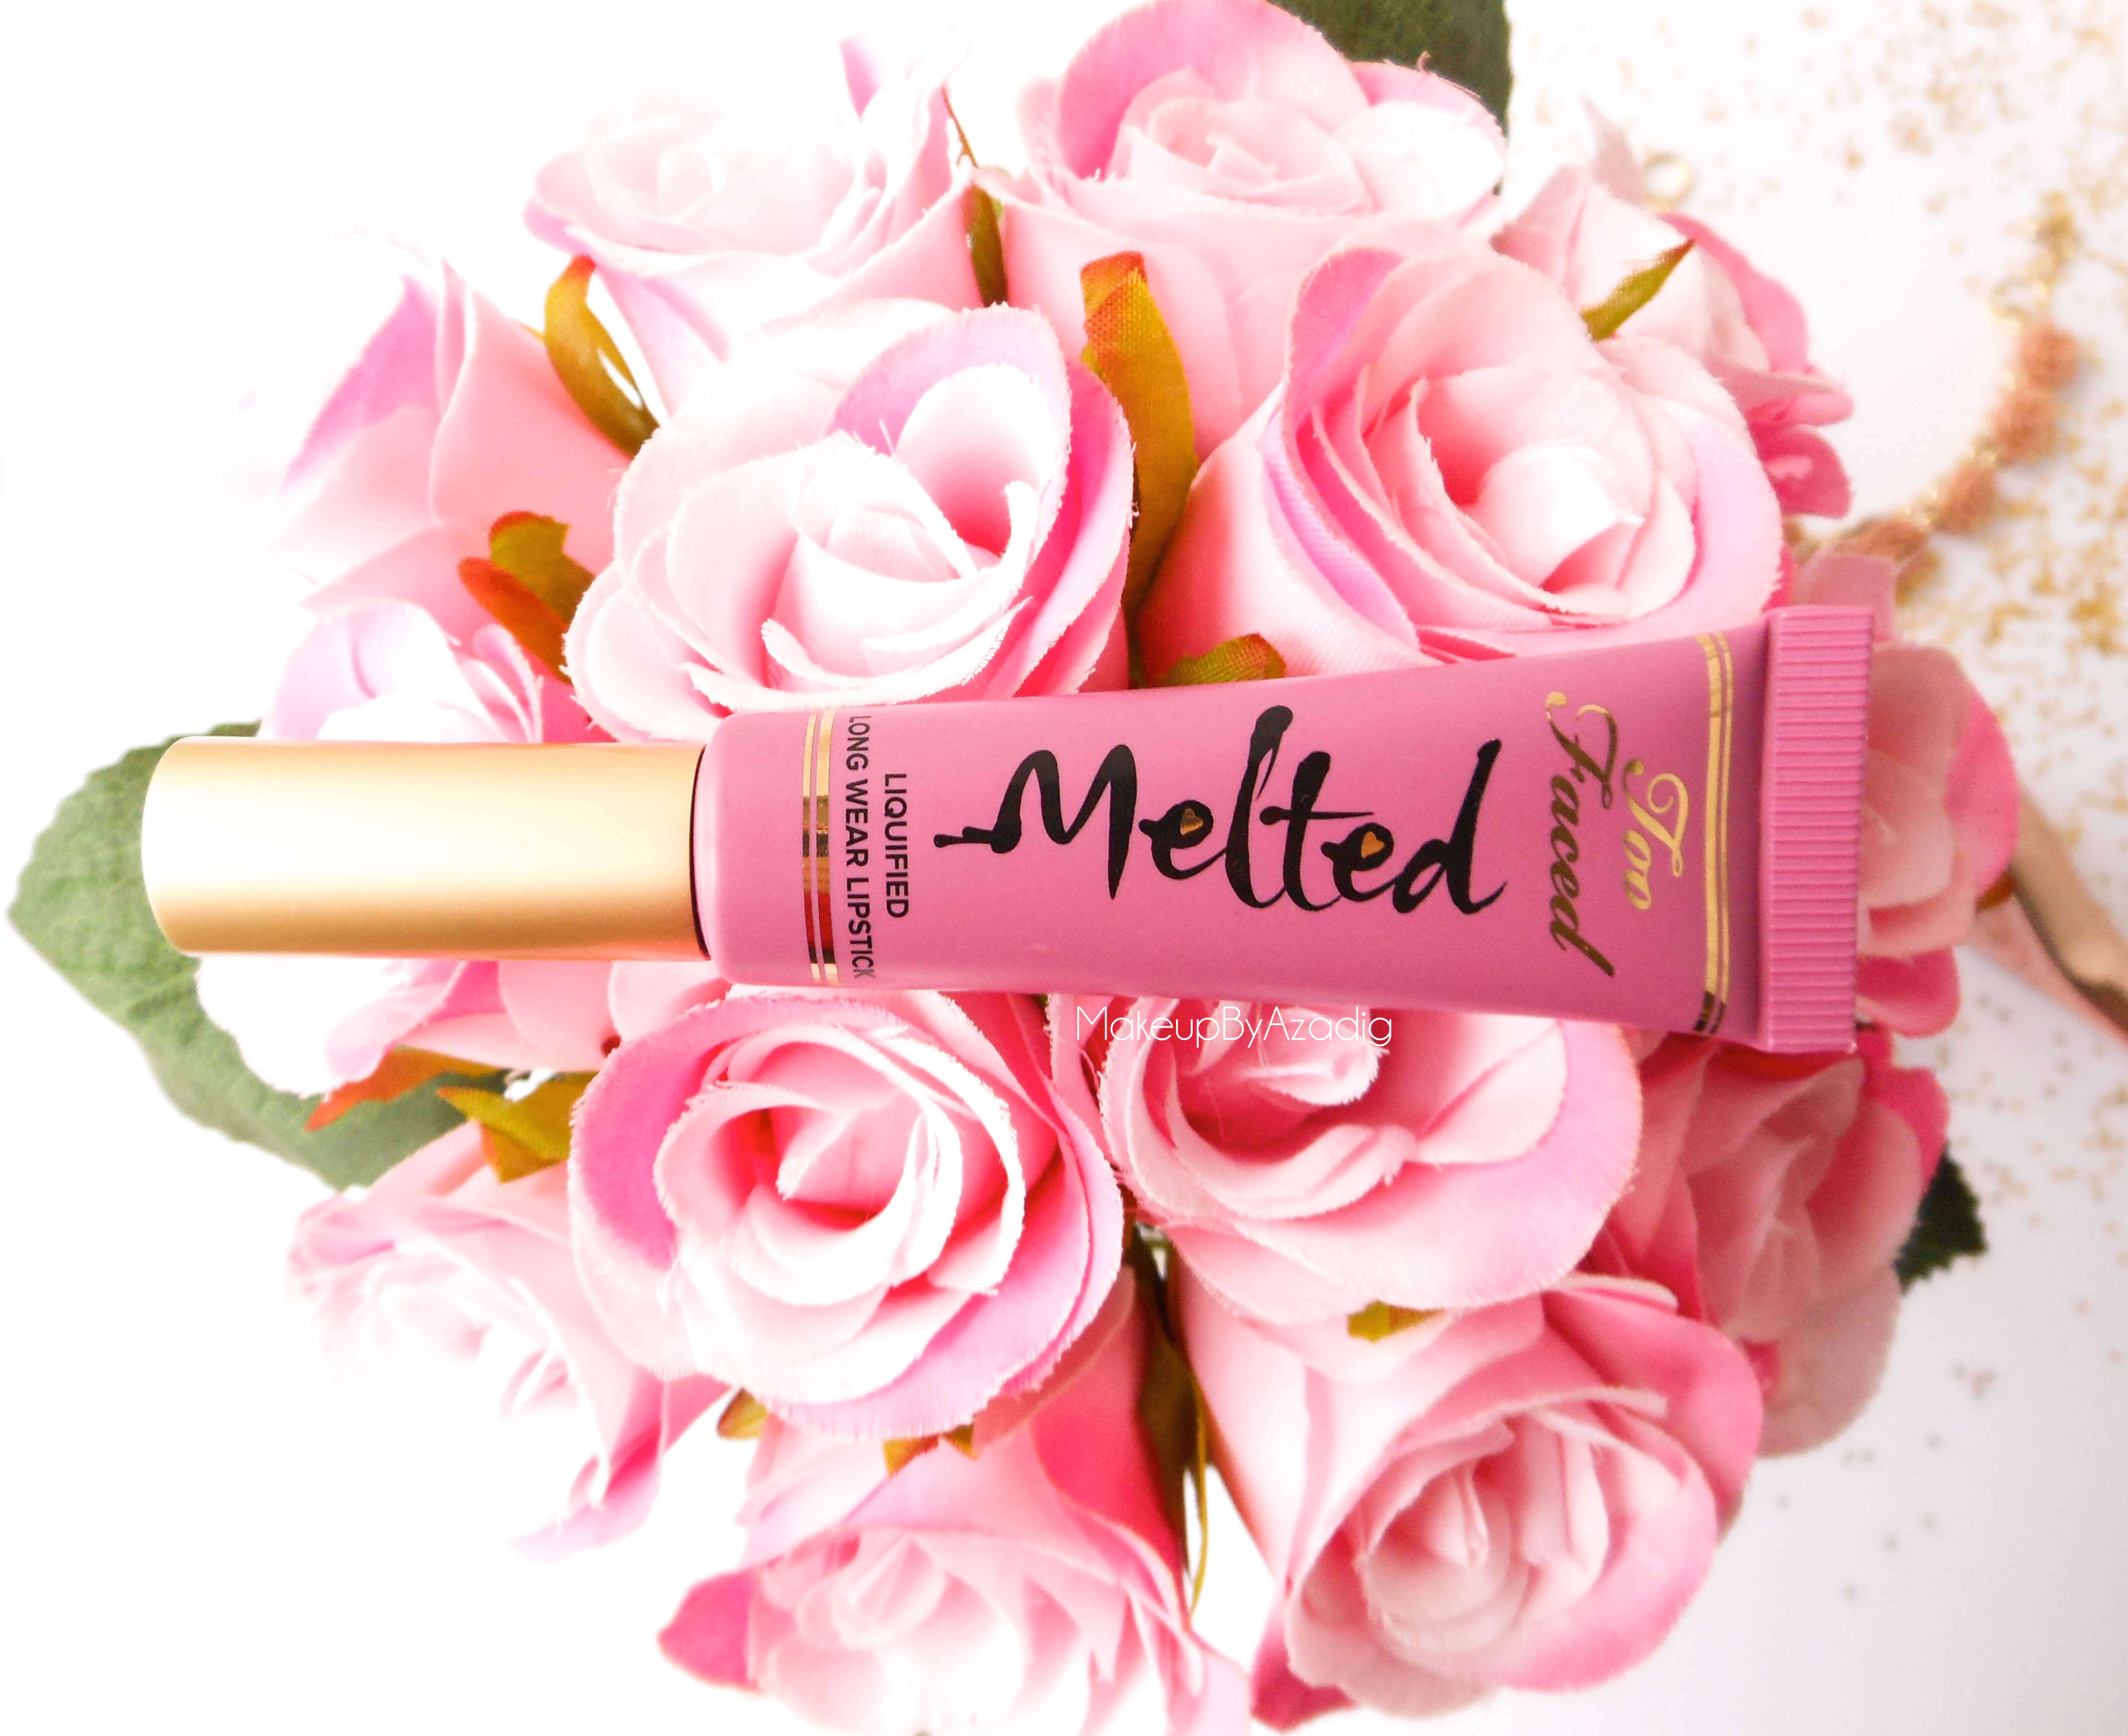 makeupbyazadig-troyes-too-faced-melted-getmelted-fig-melted-matte-blog-influencer-maquillage-roses